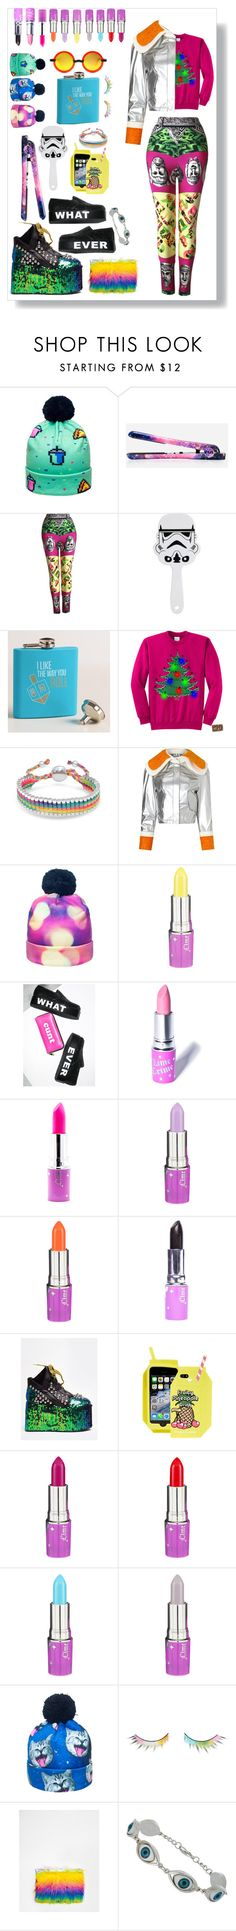 """""""EDC -Electronic Dance Christmas"""" by itsjillybitch ❤ liked on Polyvore featuring Eva NYC, Versace, Cost Plus World Market, Bling Jewelry, Anna K, Lime Crime, T.U.K., Y.R.U., Skinnydip and shu uemura"""